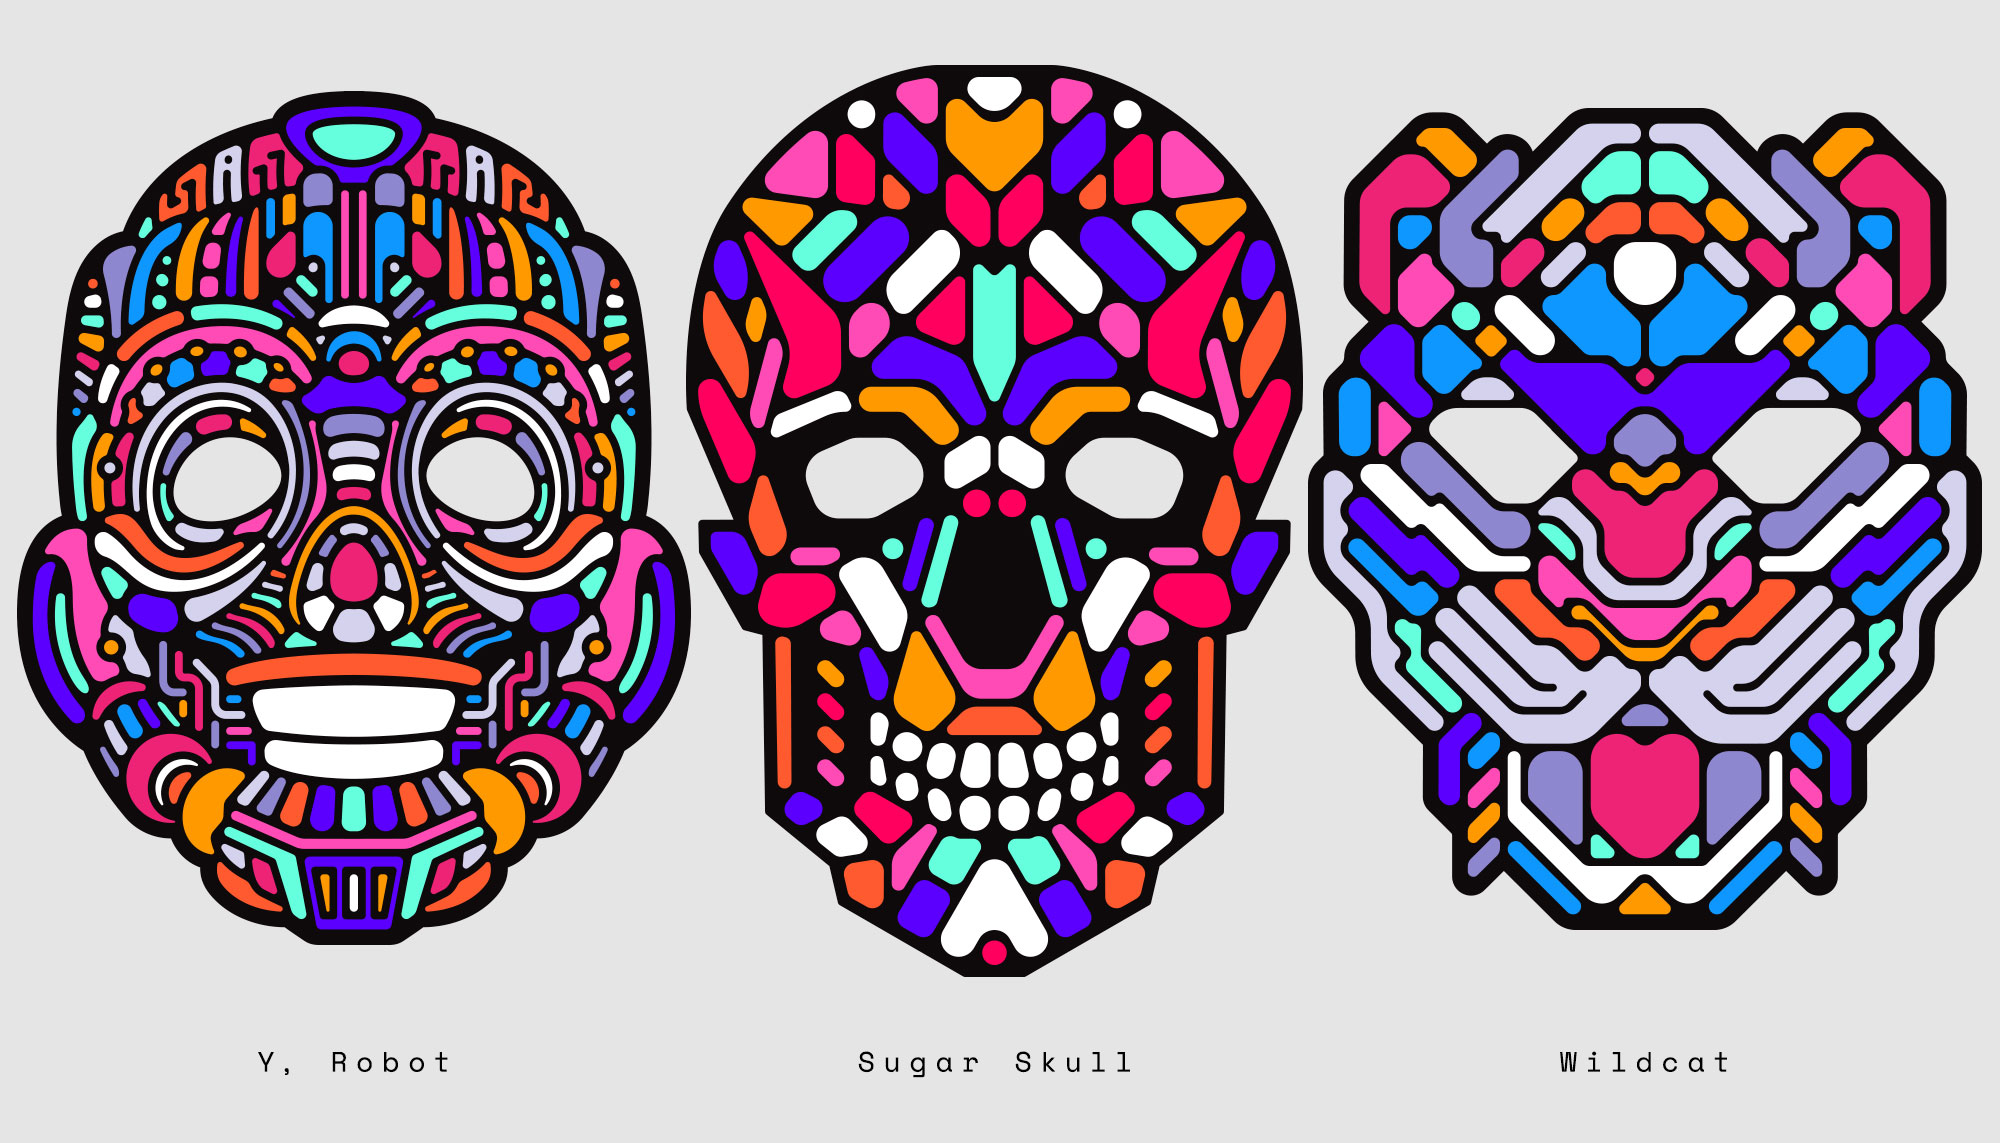 Kickstarter LED light up graphic mask designs by Singapore based brand strategy and creative design consultancy, BÜRO UFHO.